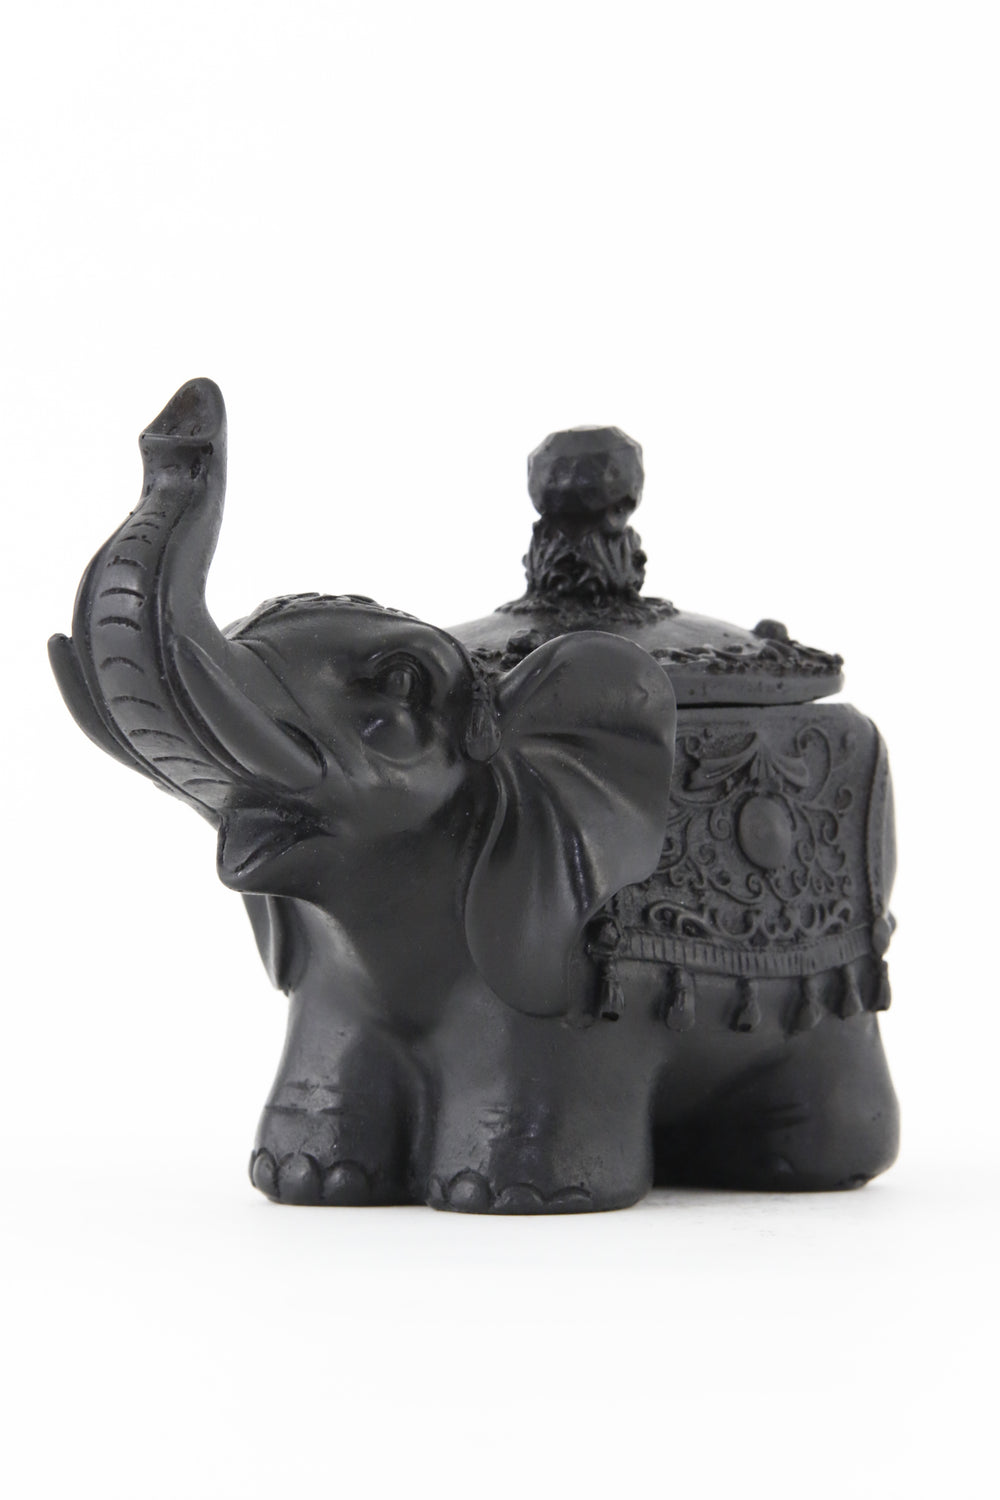 ELEPHANT BOX STATUE RECTANGLE DARK SIDE 2 VIEW